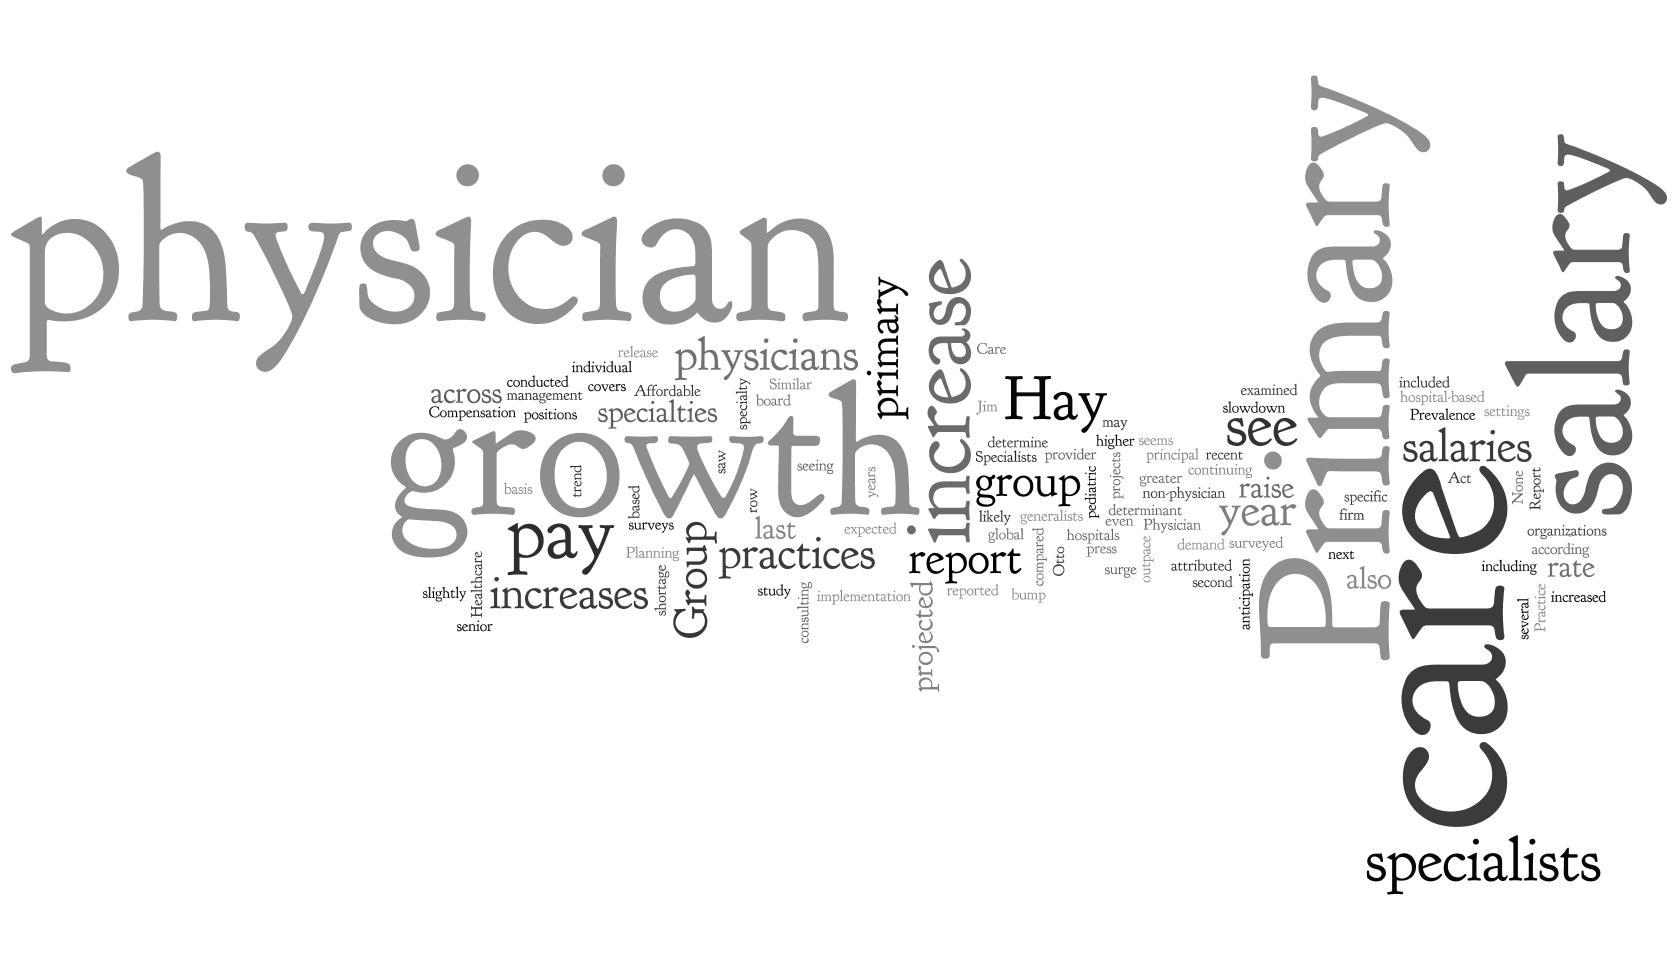 Primary care physician salary growth projected to outpace